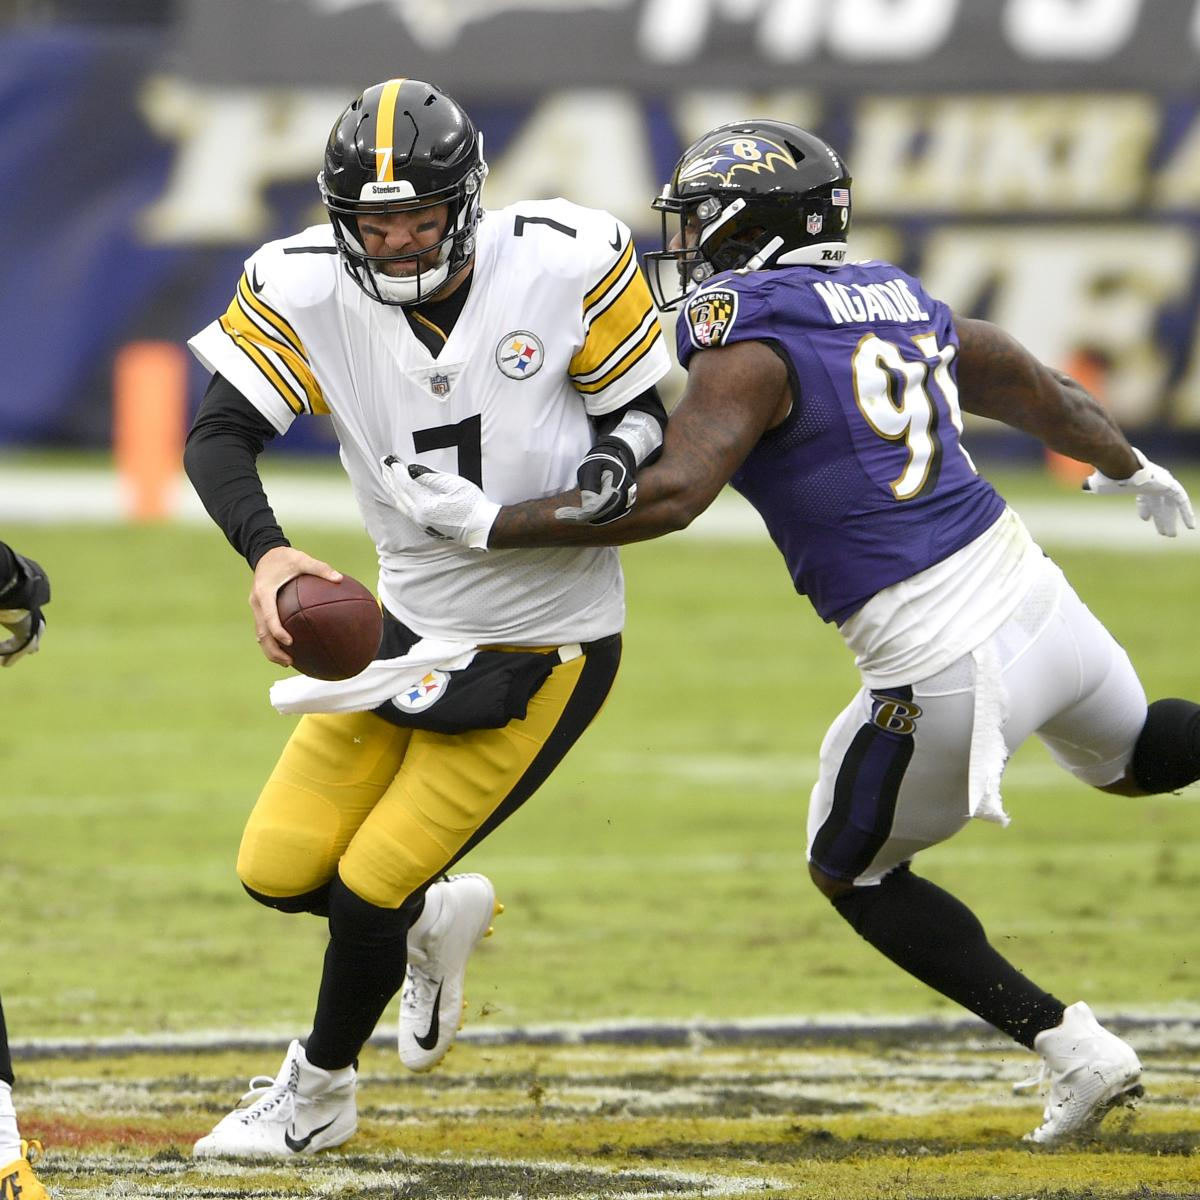 Ravens vs. Steelers to Be Played Wednesday After Daily COVID-19 Testing